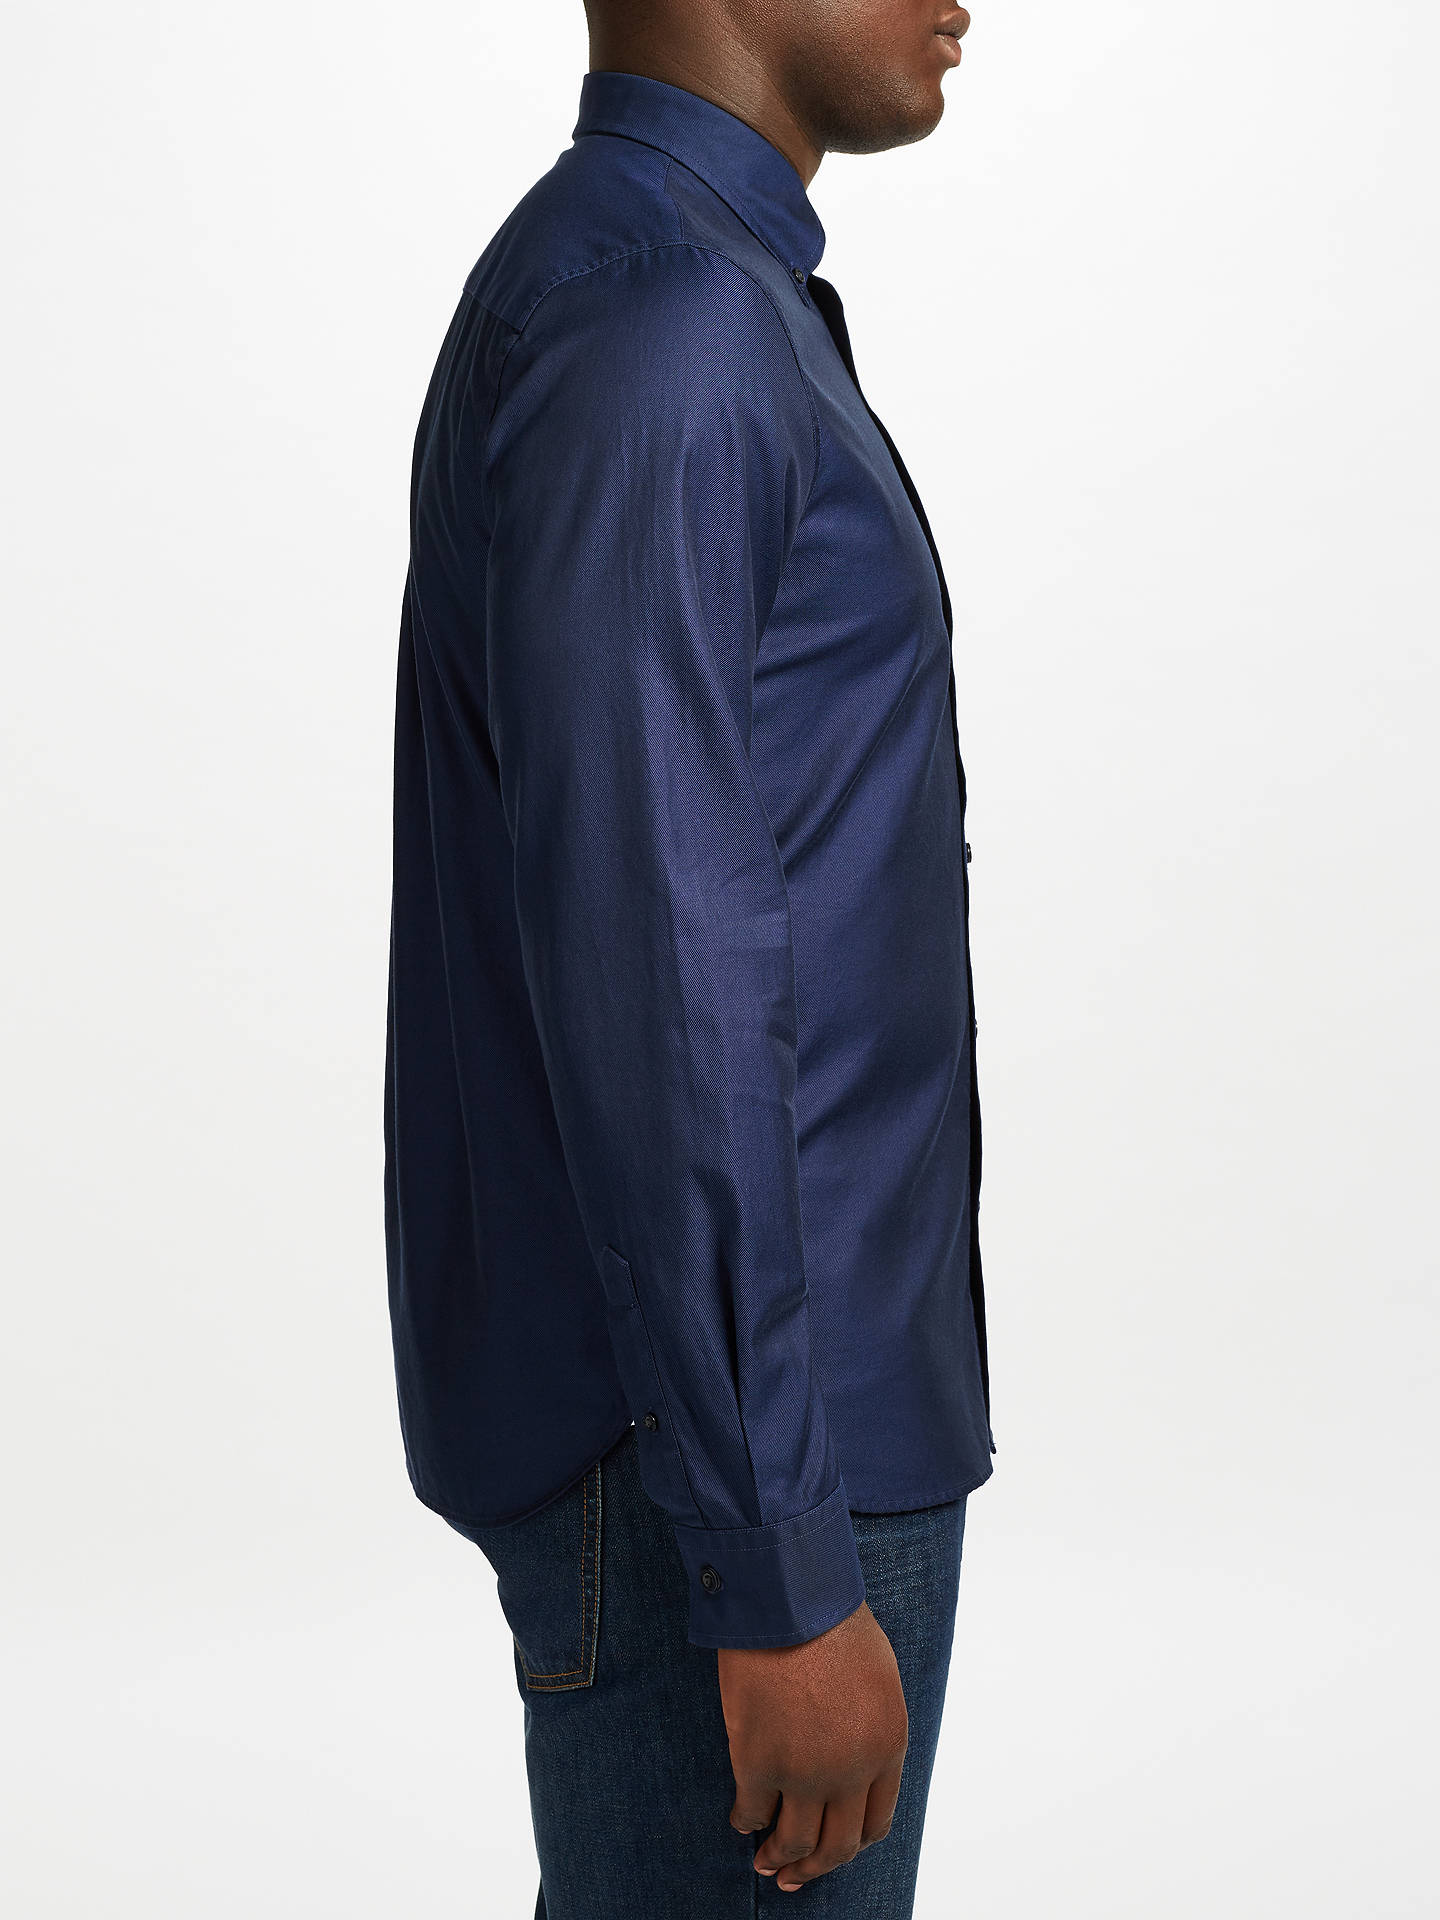 Fred Perry Classic Oxford Shirt, Navy at John Lewis & Partners